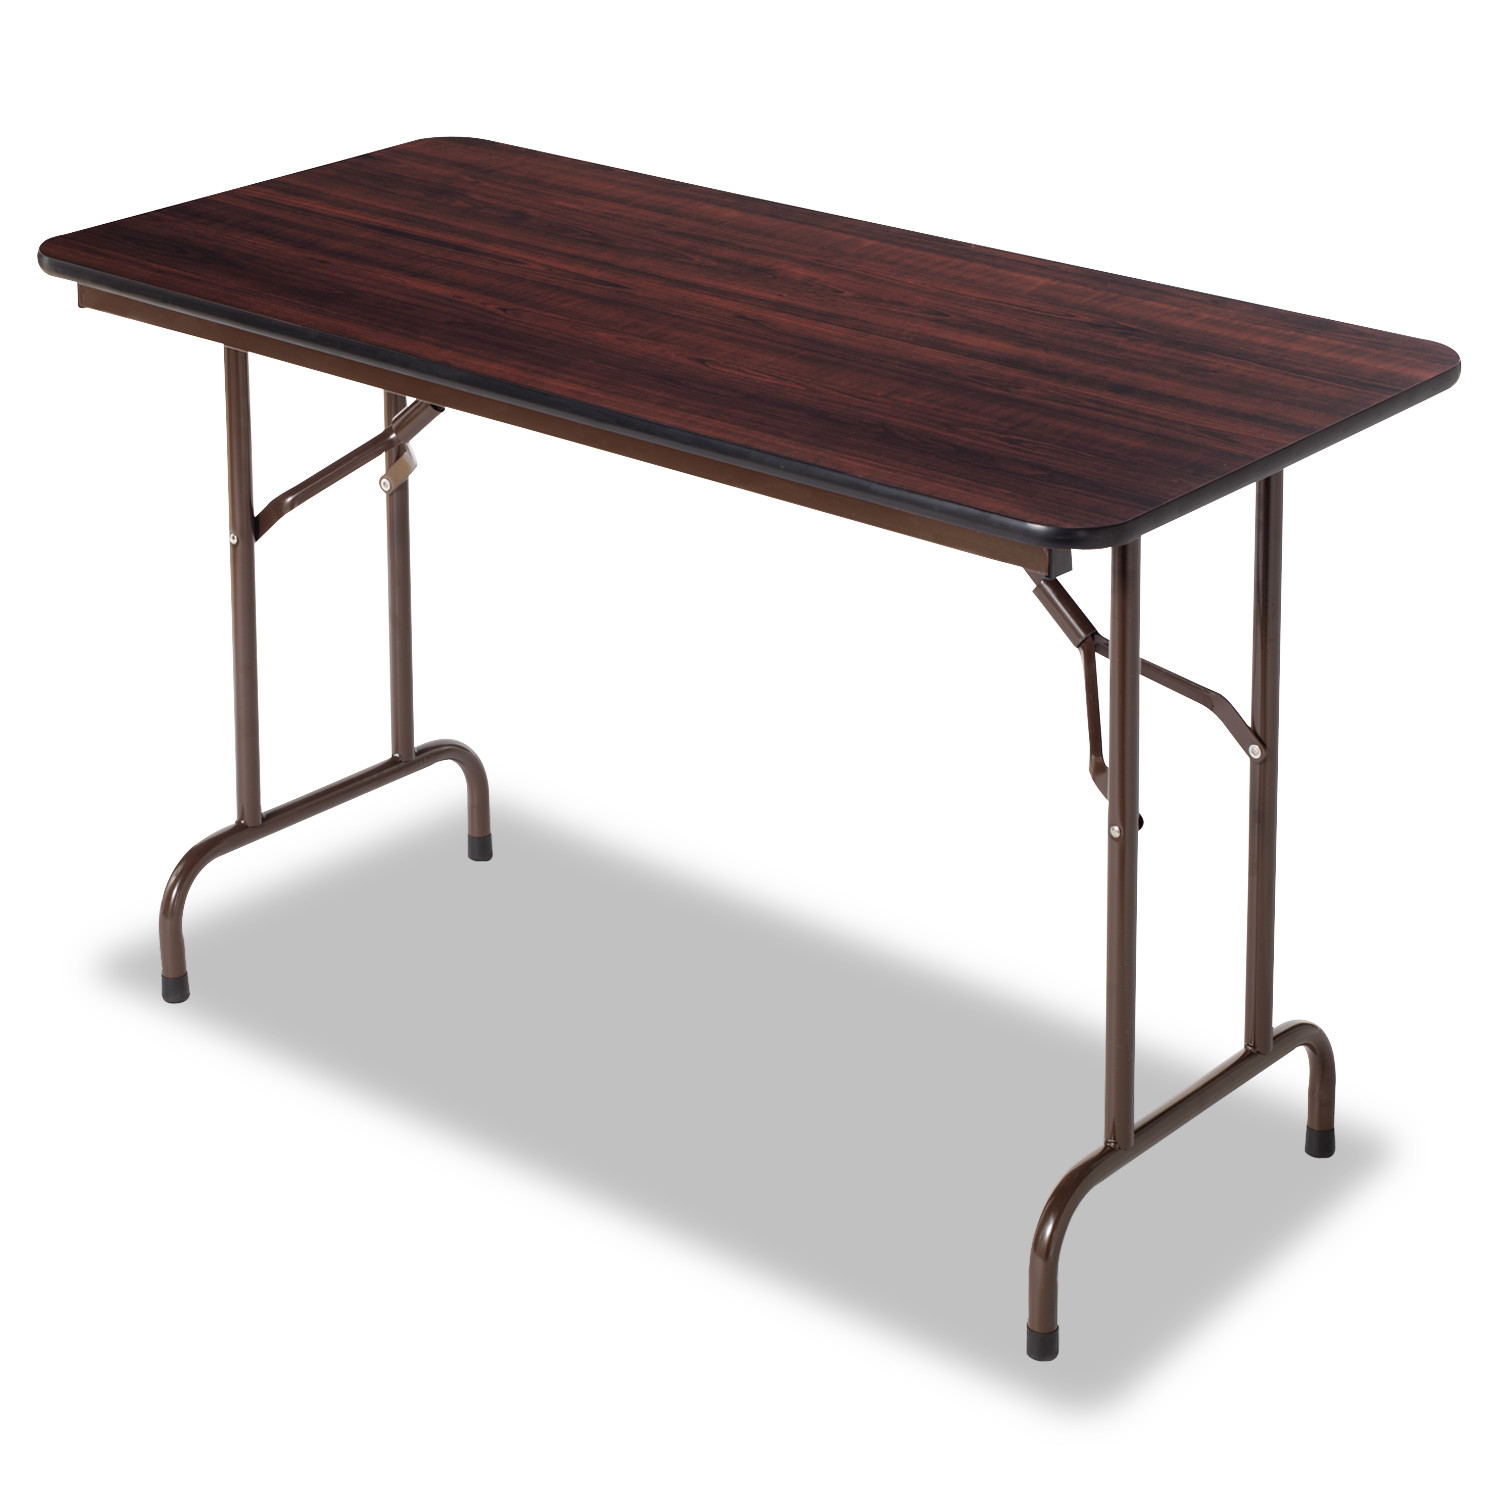 Alera Wood Folding Table, Rectangular, 48w x 24d x 29h, Walnut